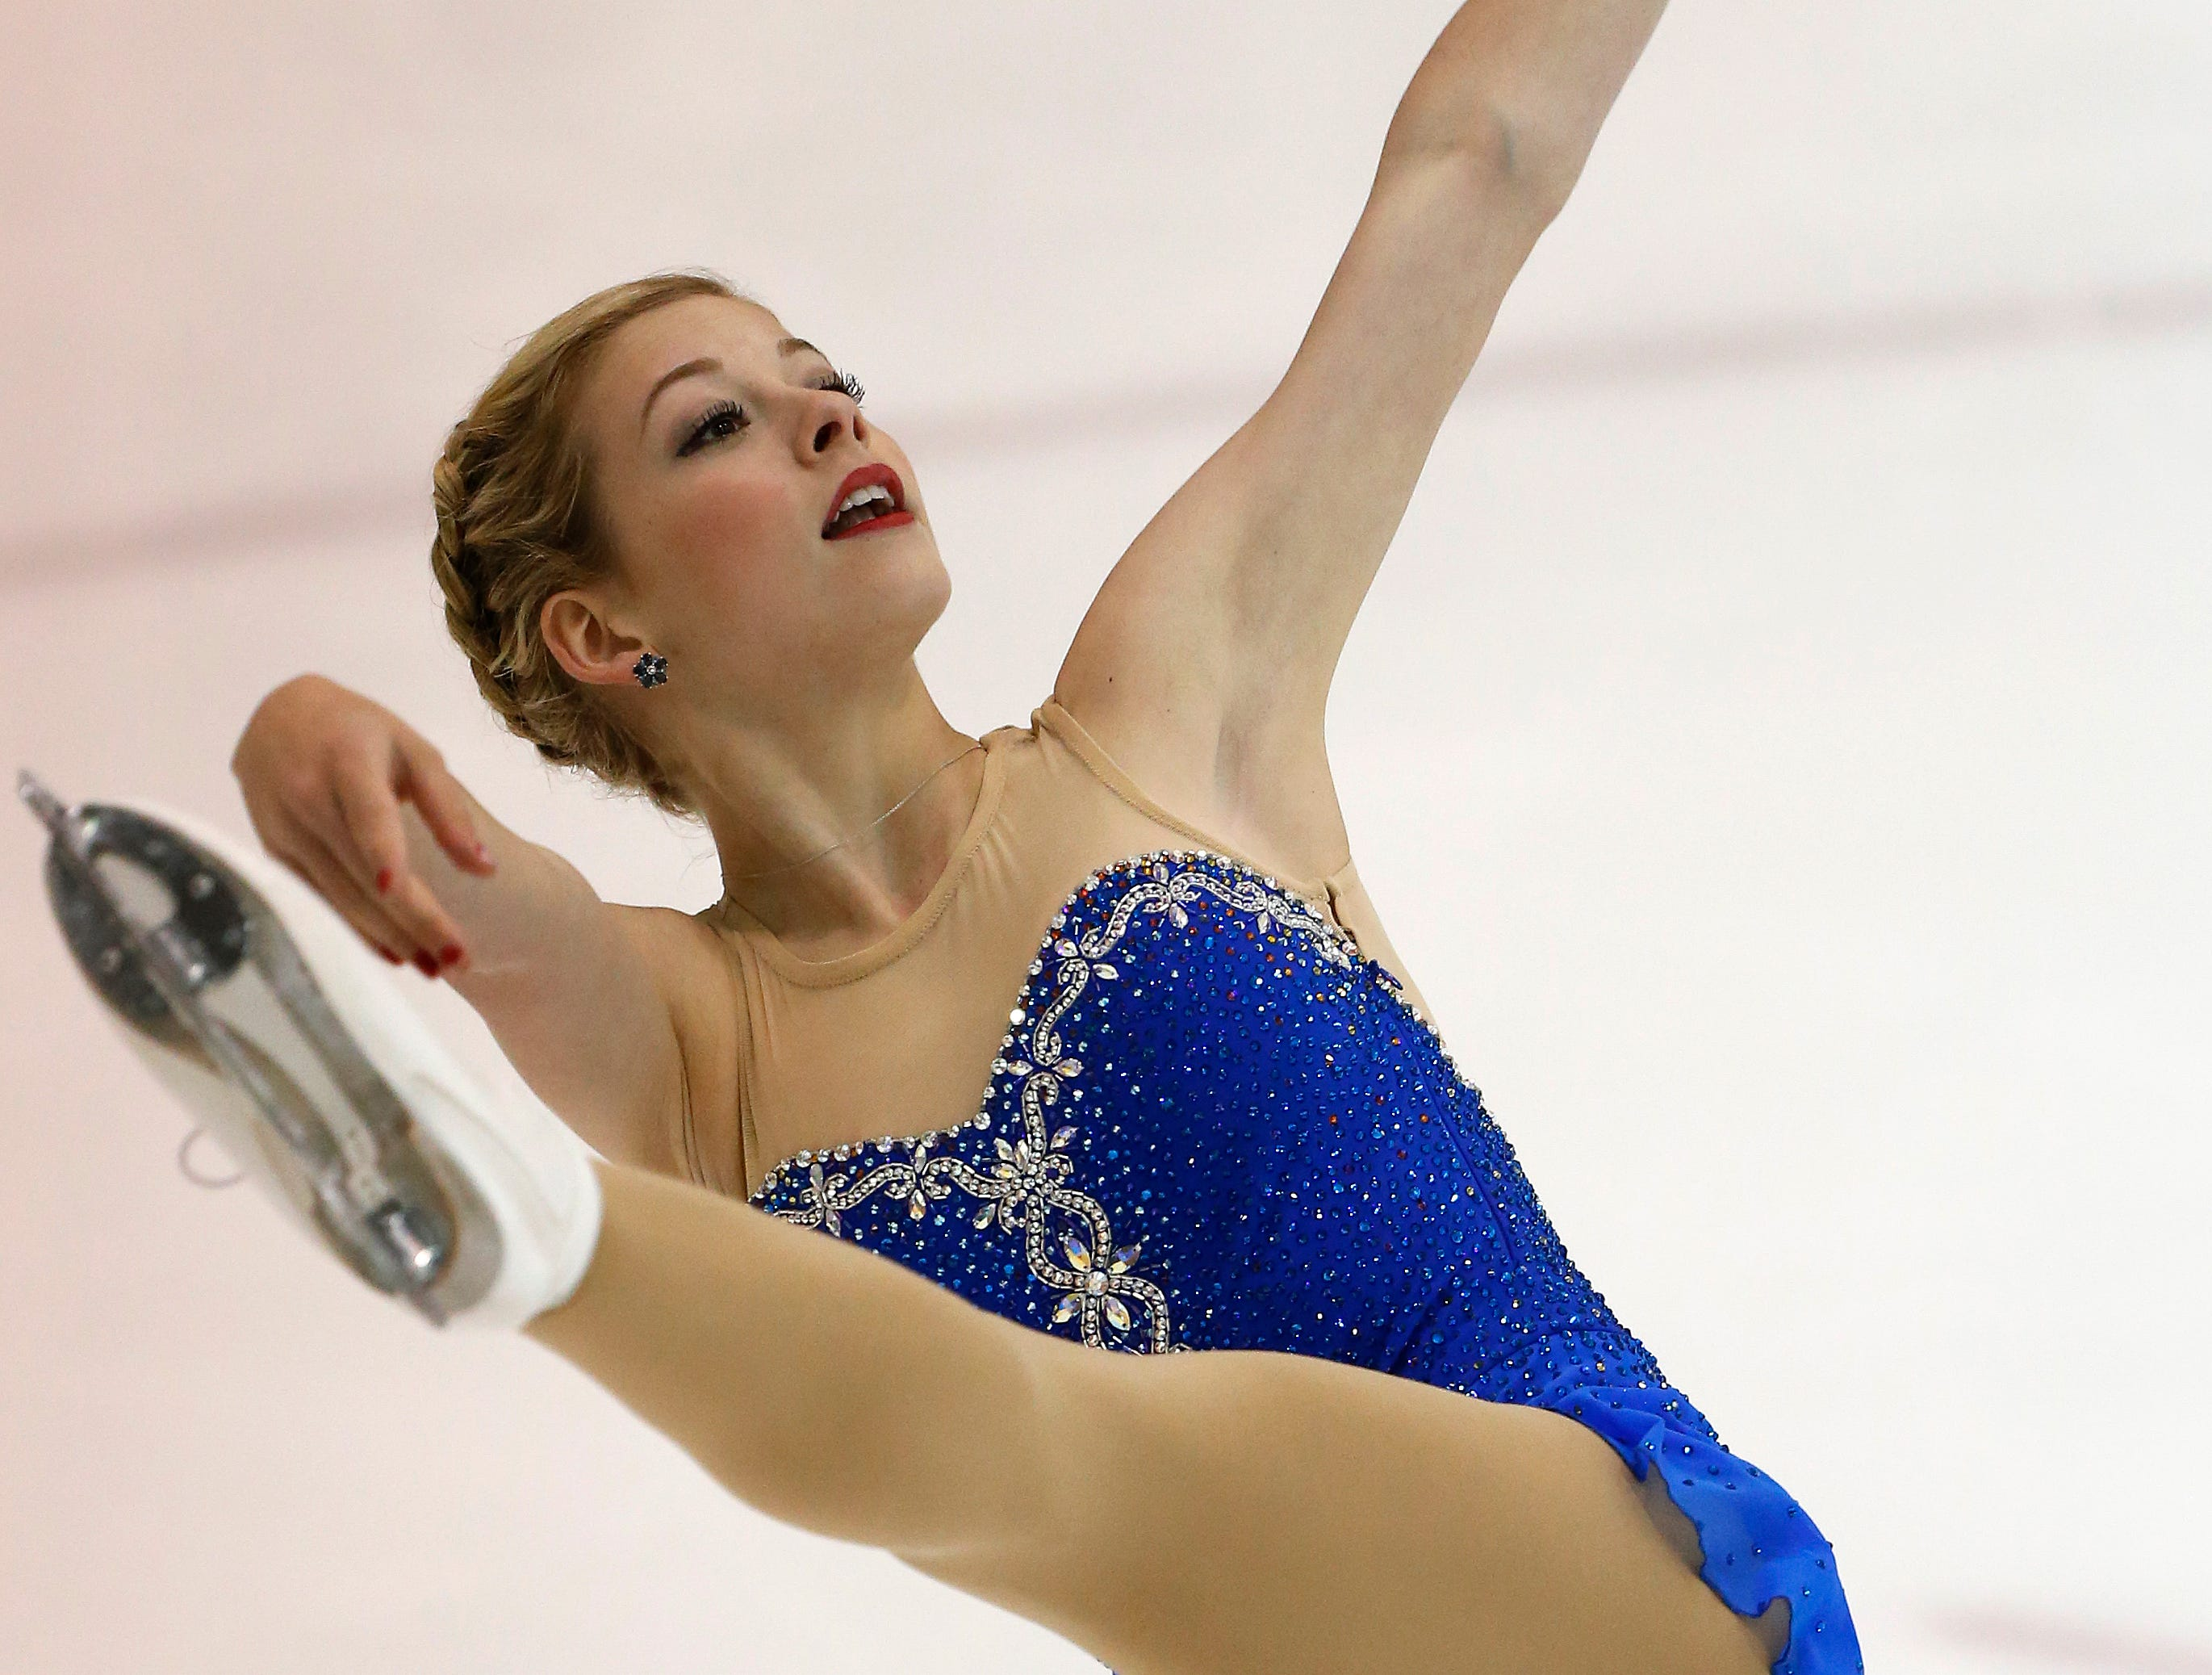 Gracie Gold began skating at age 8 and has a twin sister who also competed in the sport. Here Gold is shown at the 2012 U.S. International Figure Skating Classic in Salt Lake City, Utah.